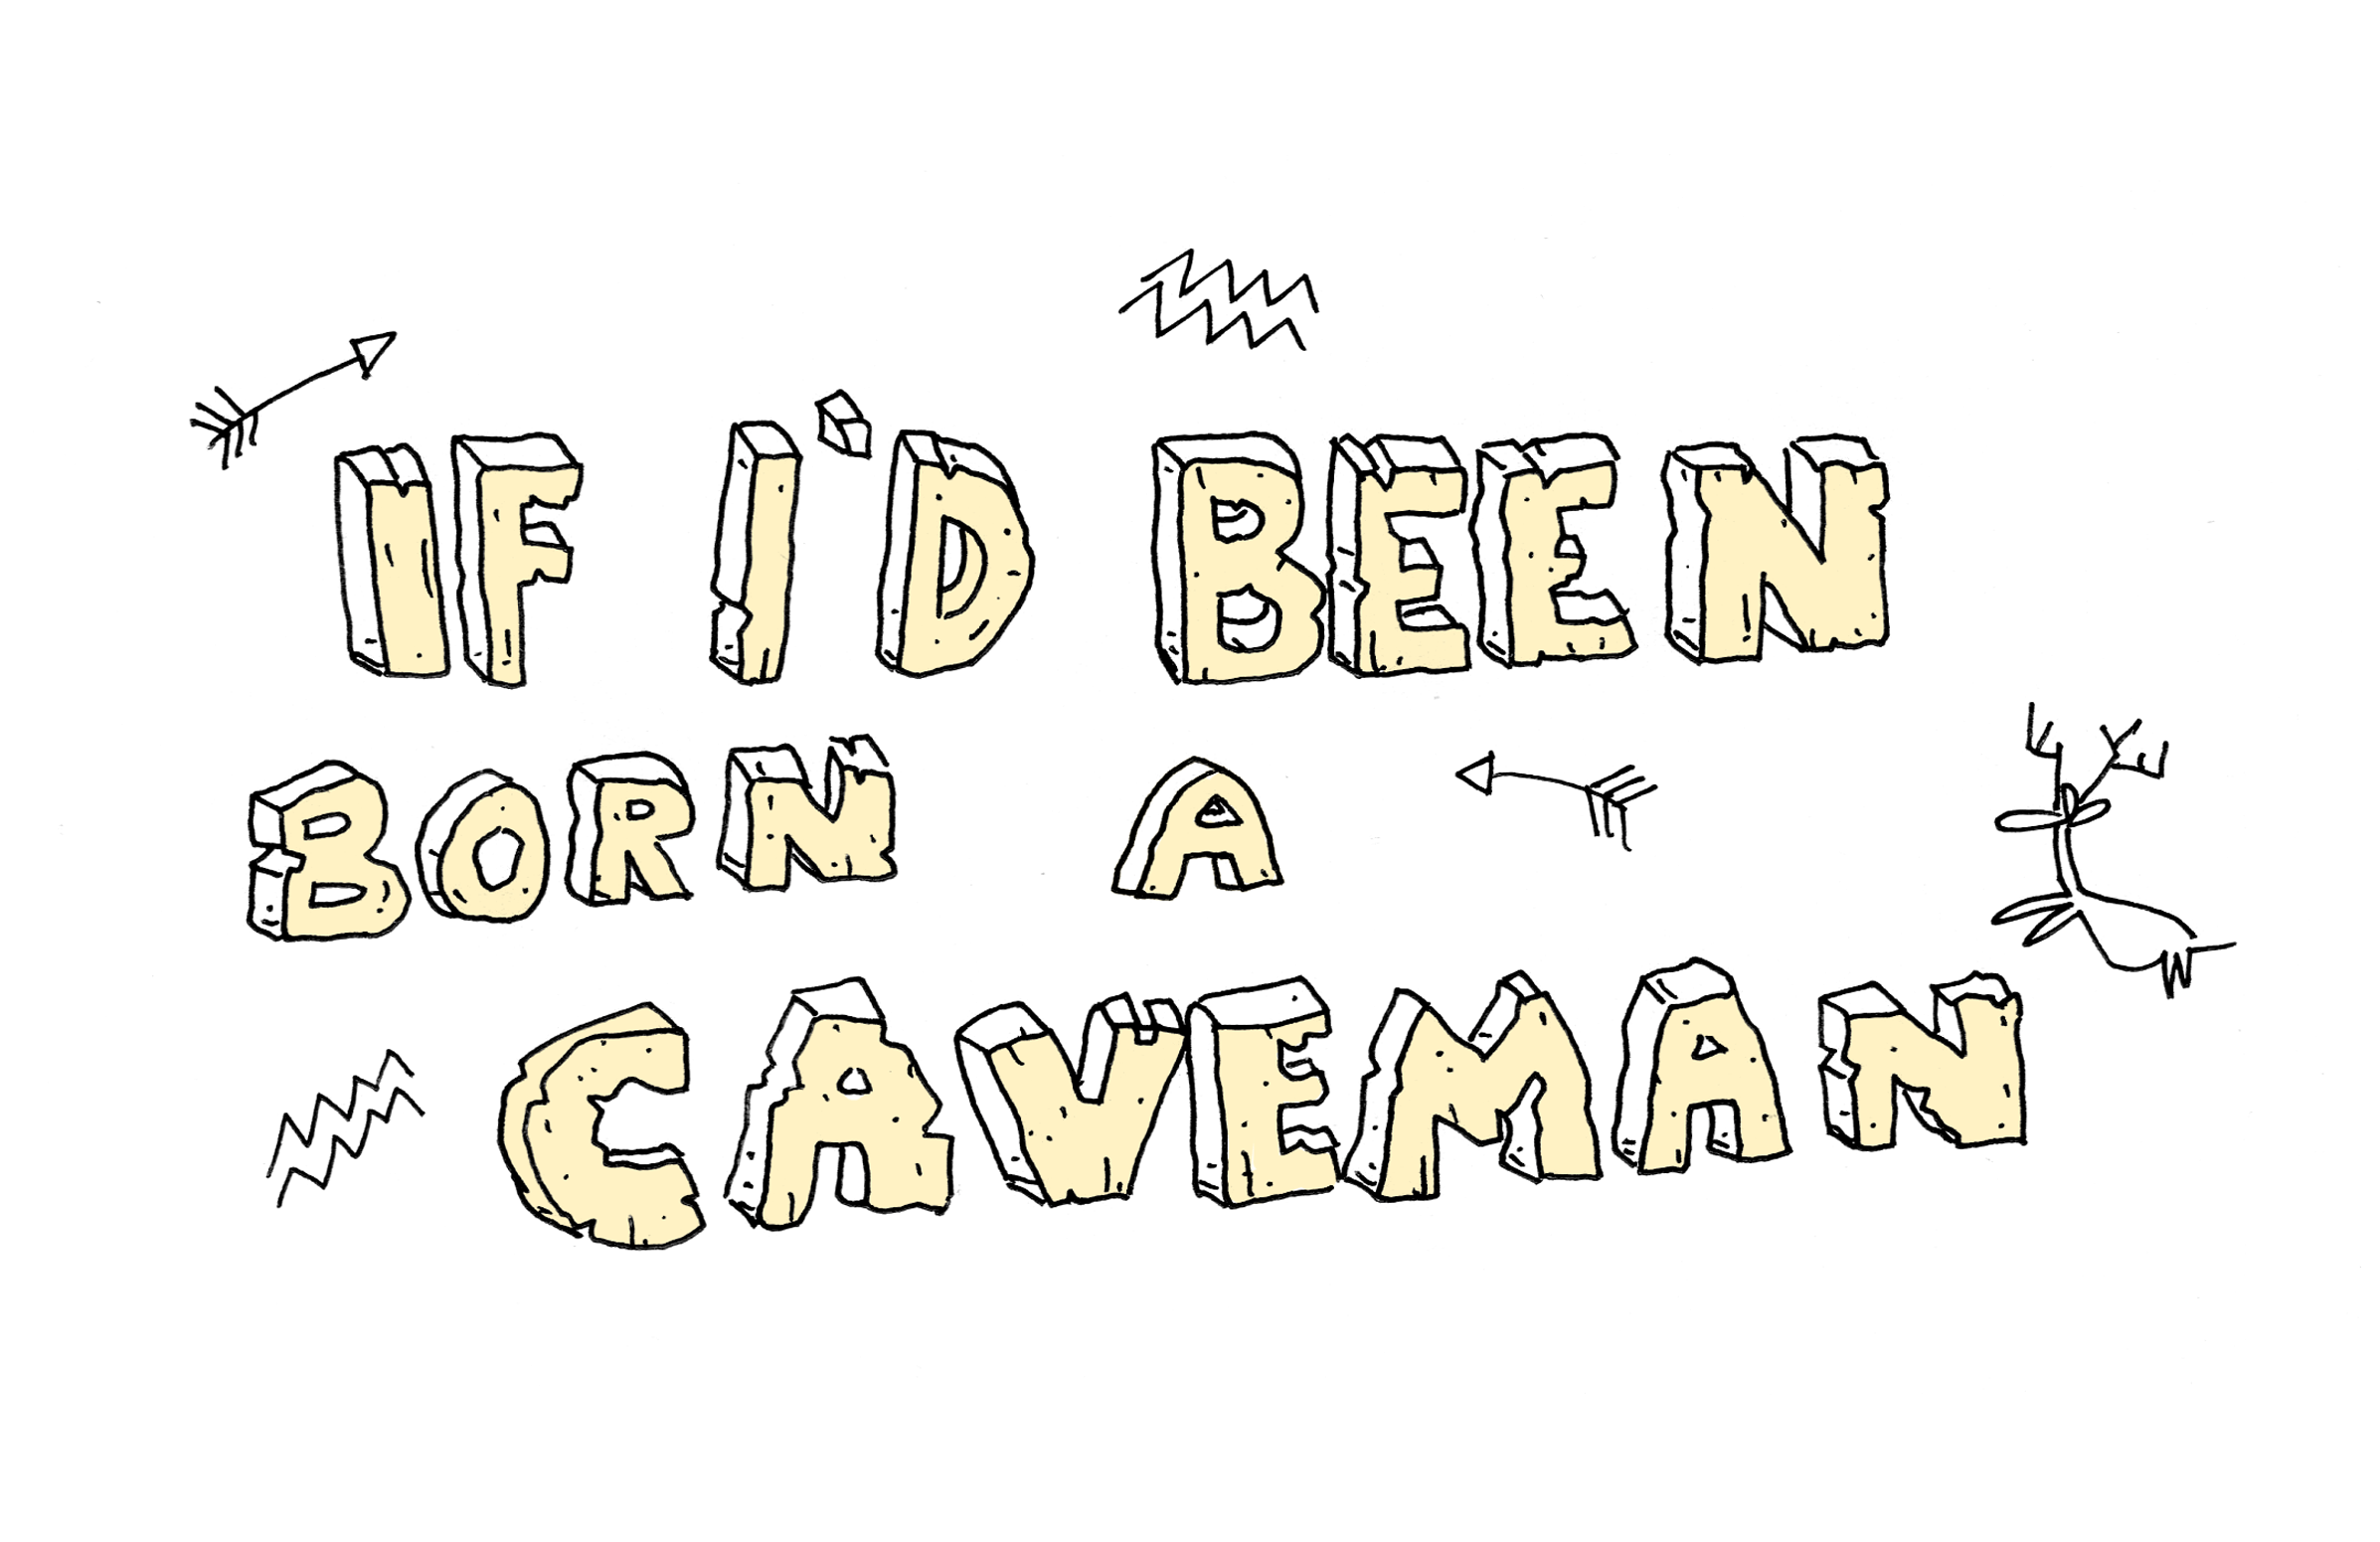 If I'd Been Born a Caveman